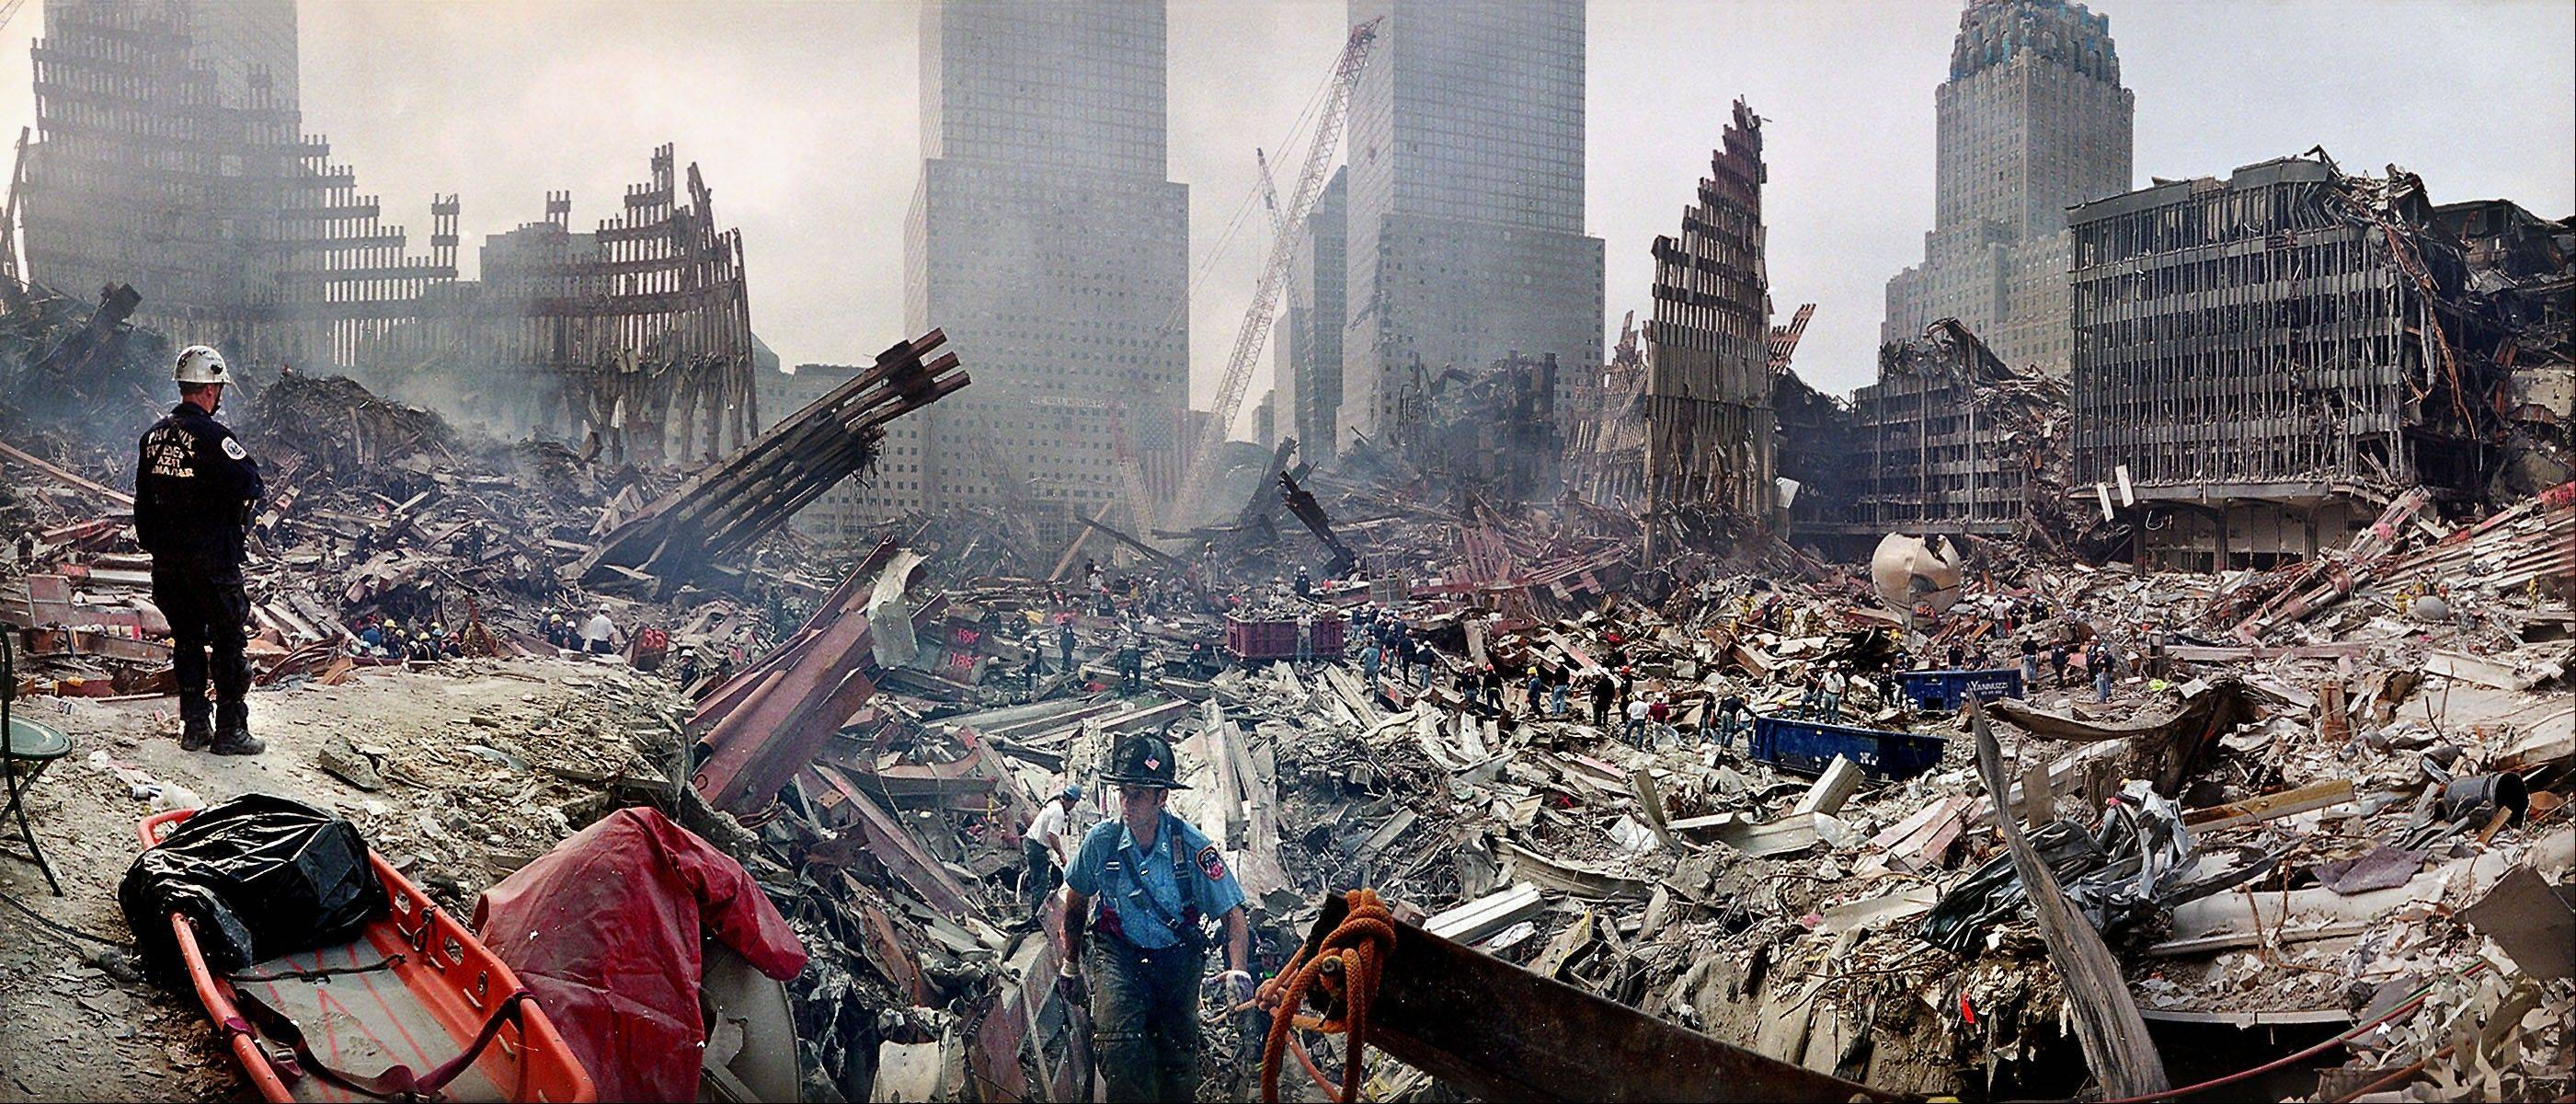 Rescue workers examine the site of the Sept. 11, 2001 World Trade Center terrorist attacks in New York. Several experts say there's no hard evidence to support the federal government's declaration that 50 kinds of cancer could be caused by exposure to World Trade Center dust.